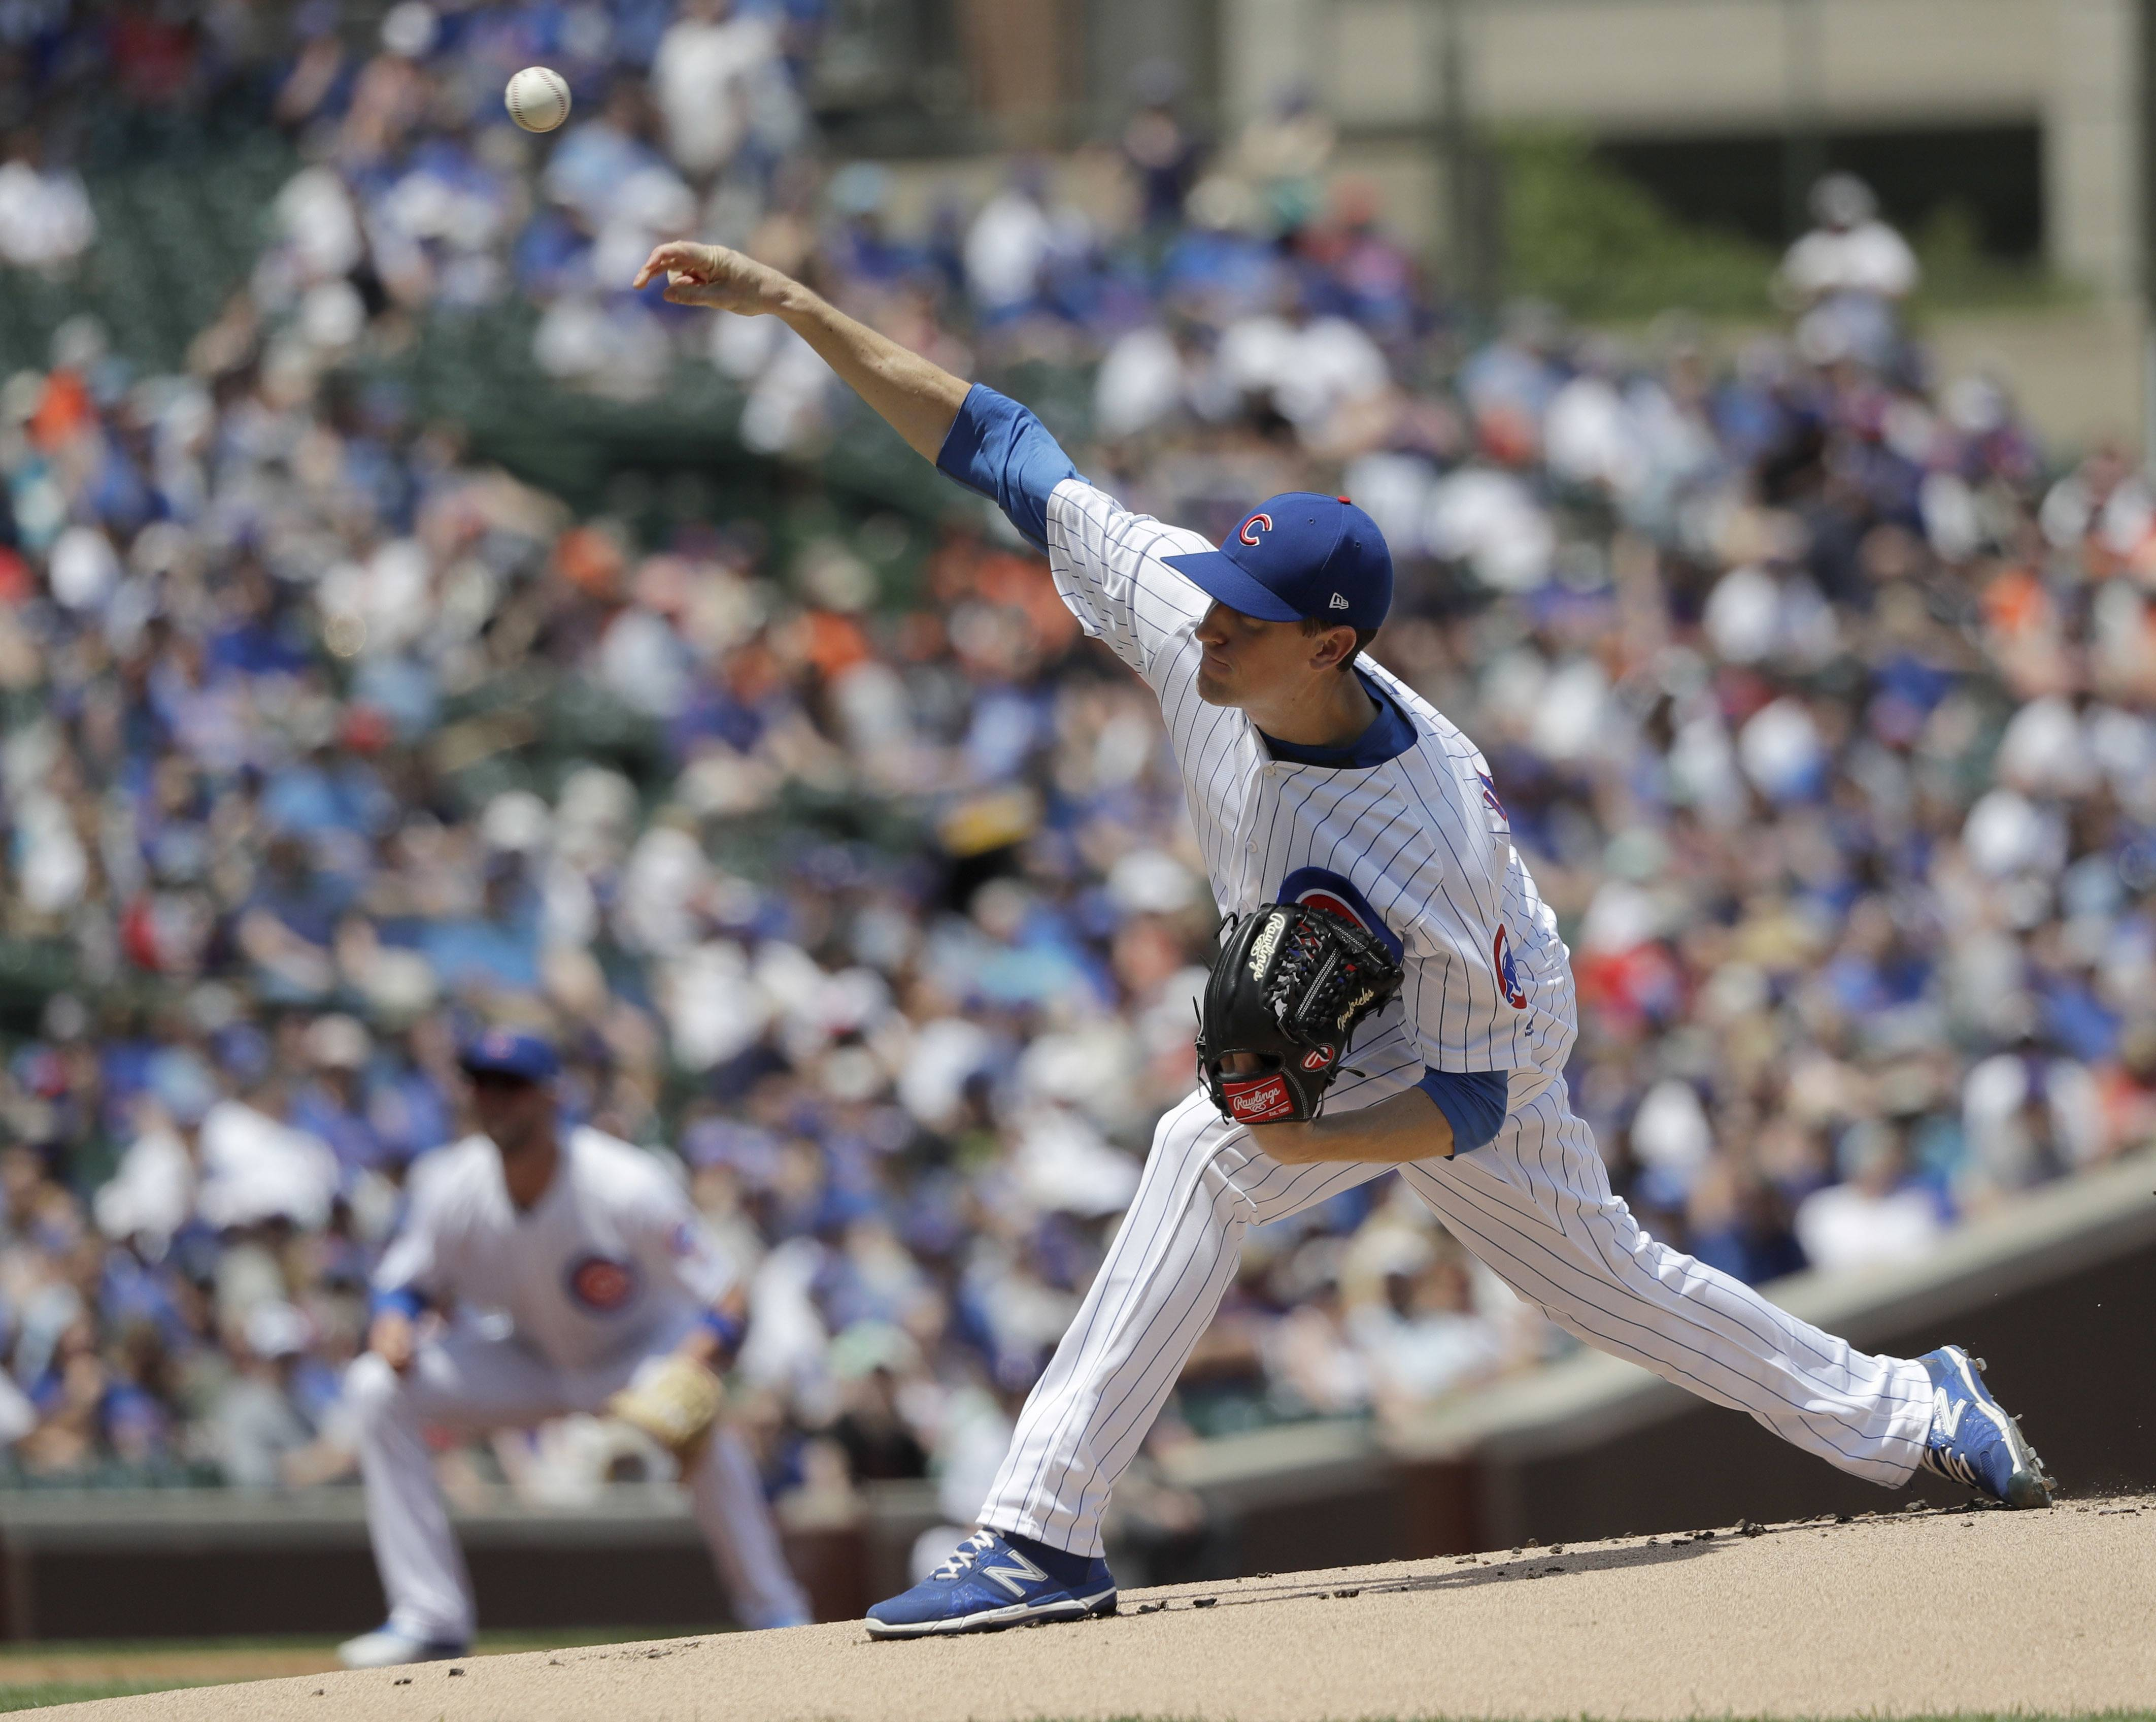 Chicago Cubs starting pitcher Kyle Hendricks delivers during the first inning of a baseball game after the game Friday, May 25, 2018, in Chicago.